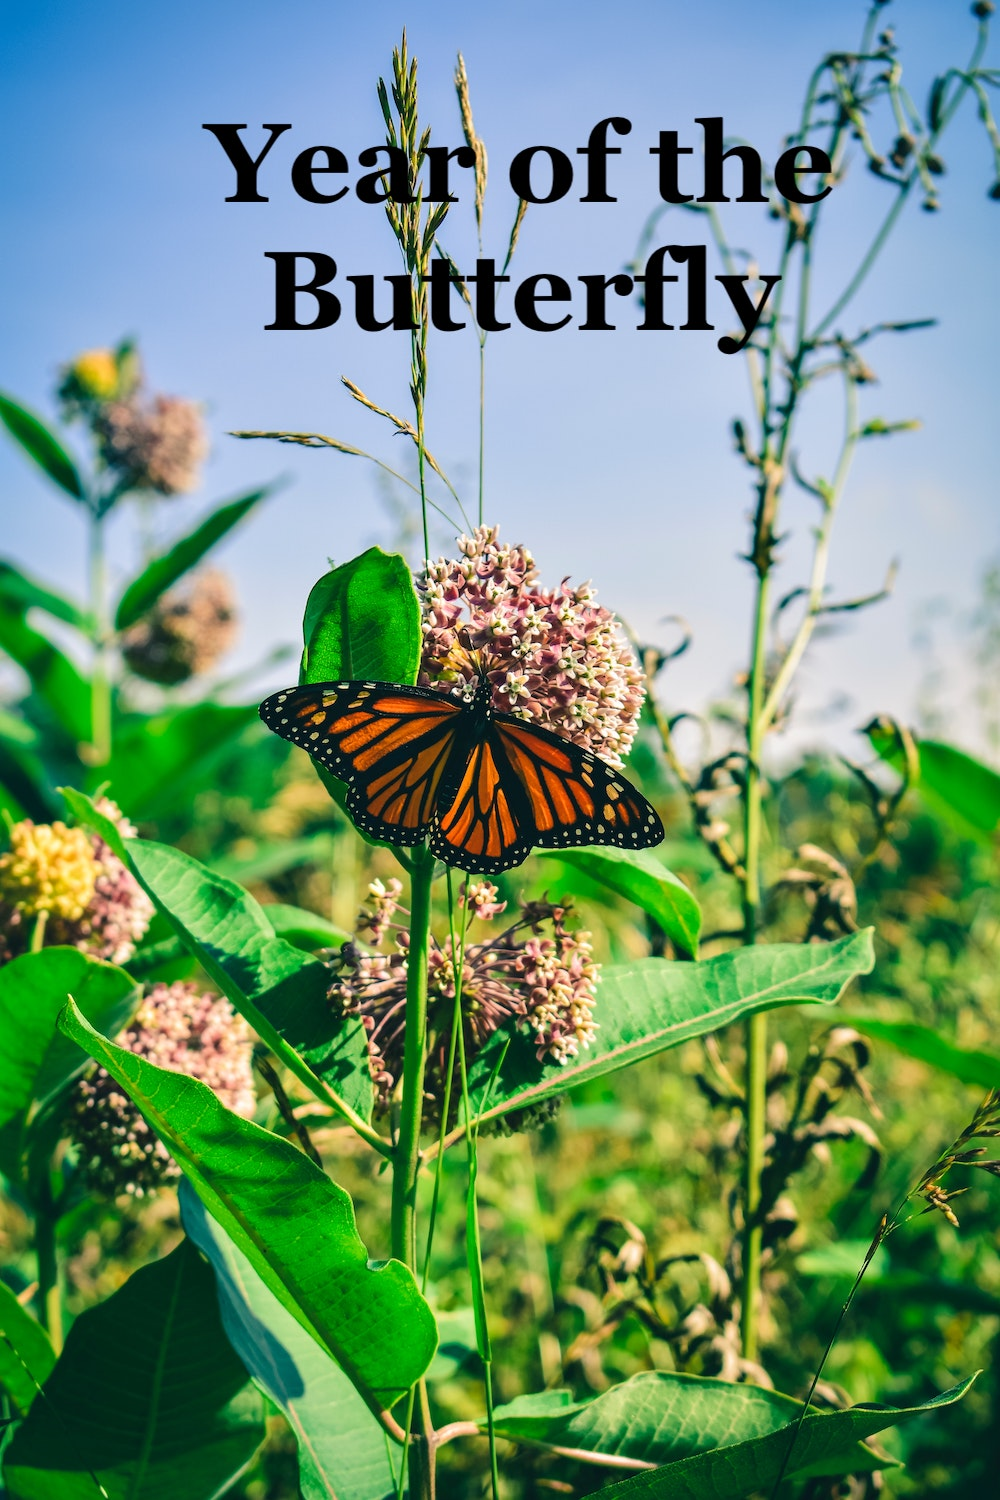 Year of the Butterfly